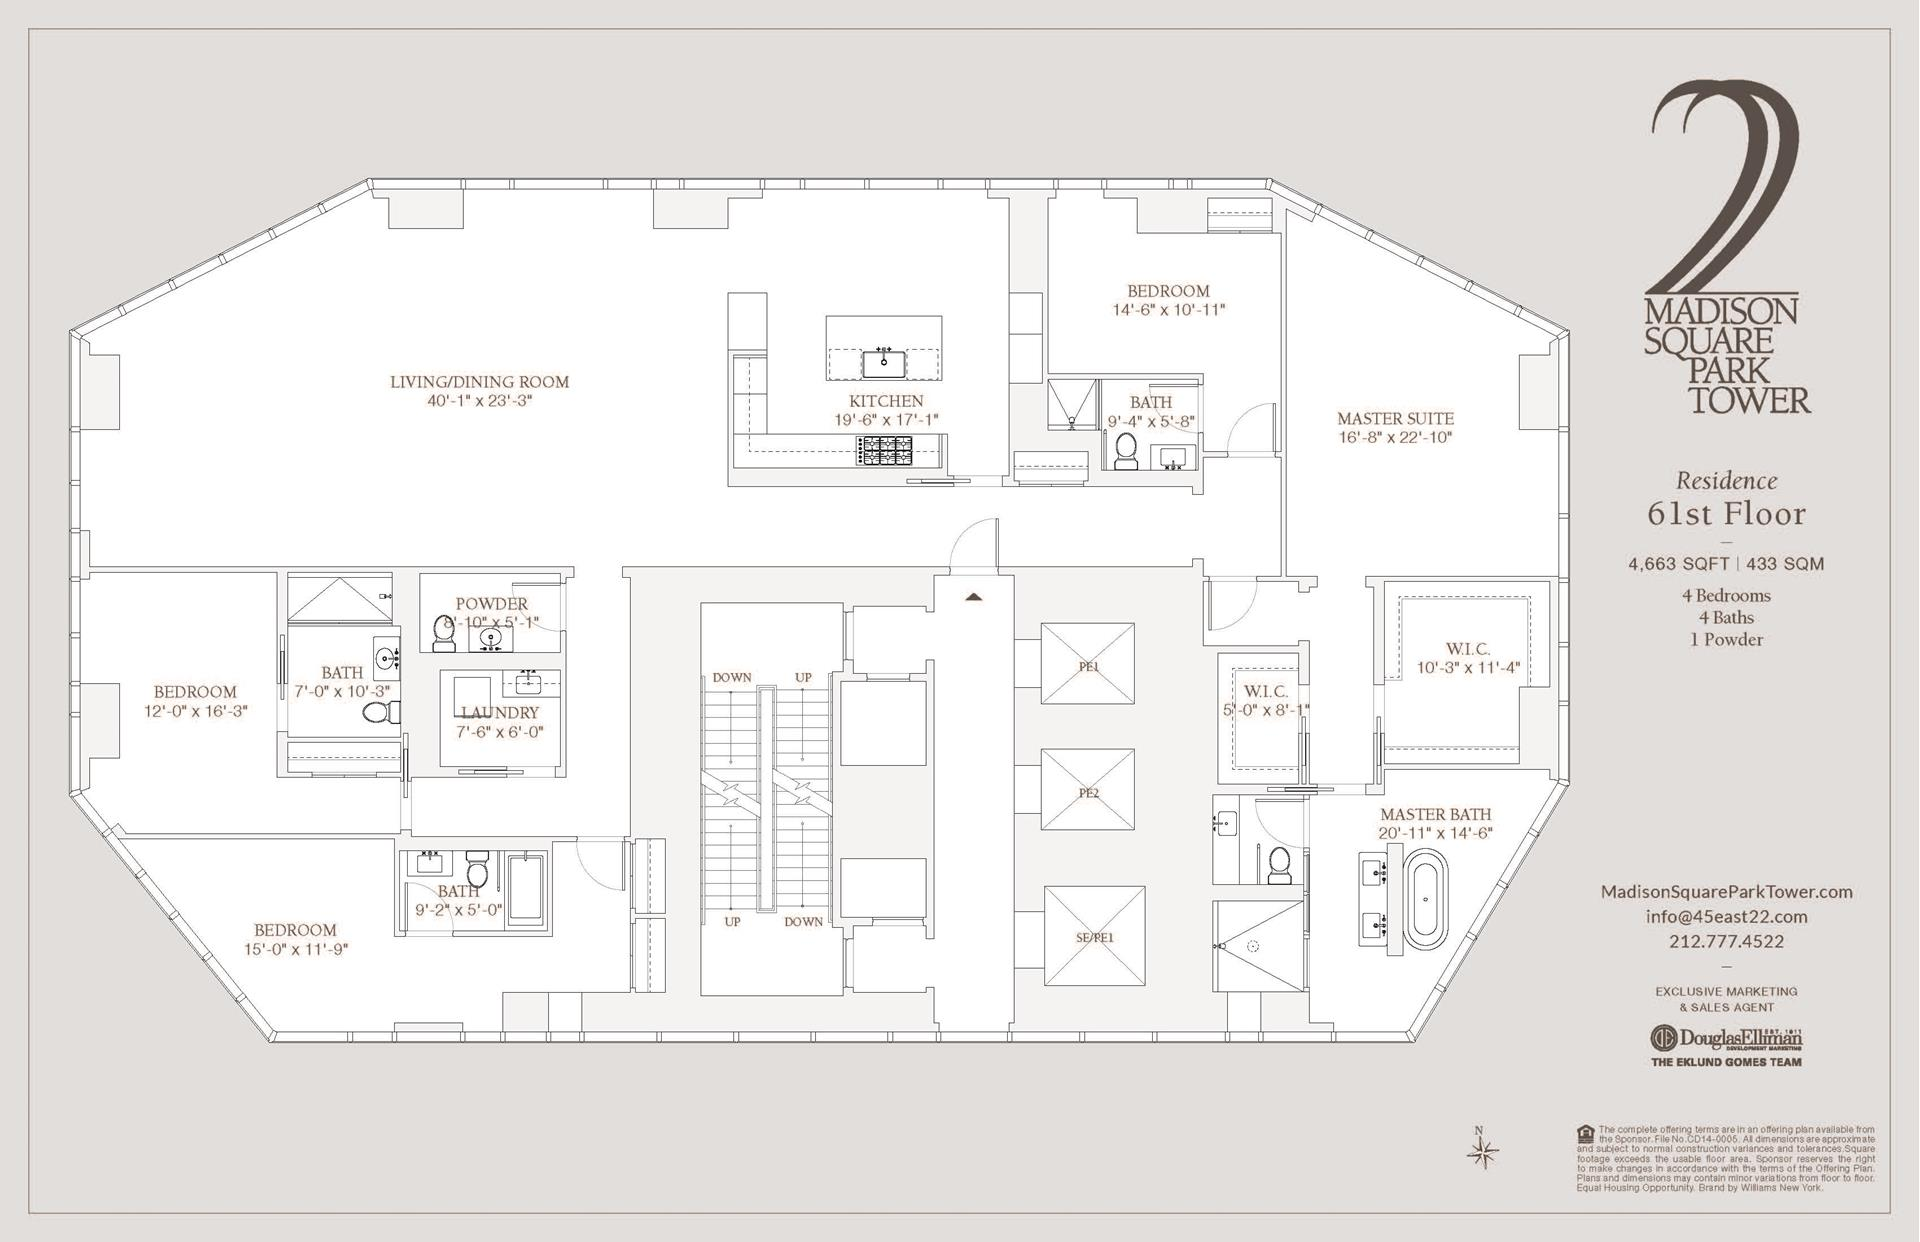 Floor plan of Madison Square Park Tower, 45 East 22nd St, 61FL - Flatiron District, New York